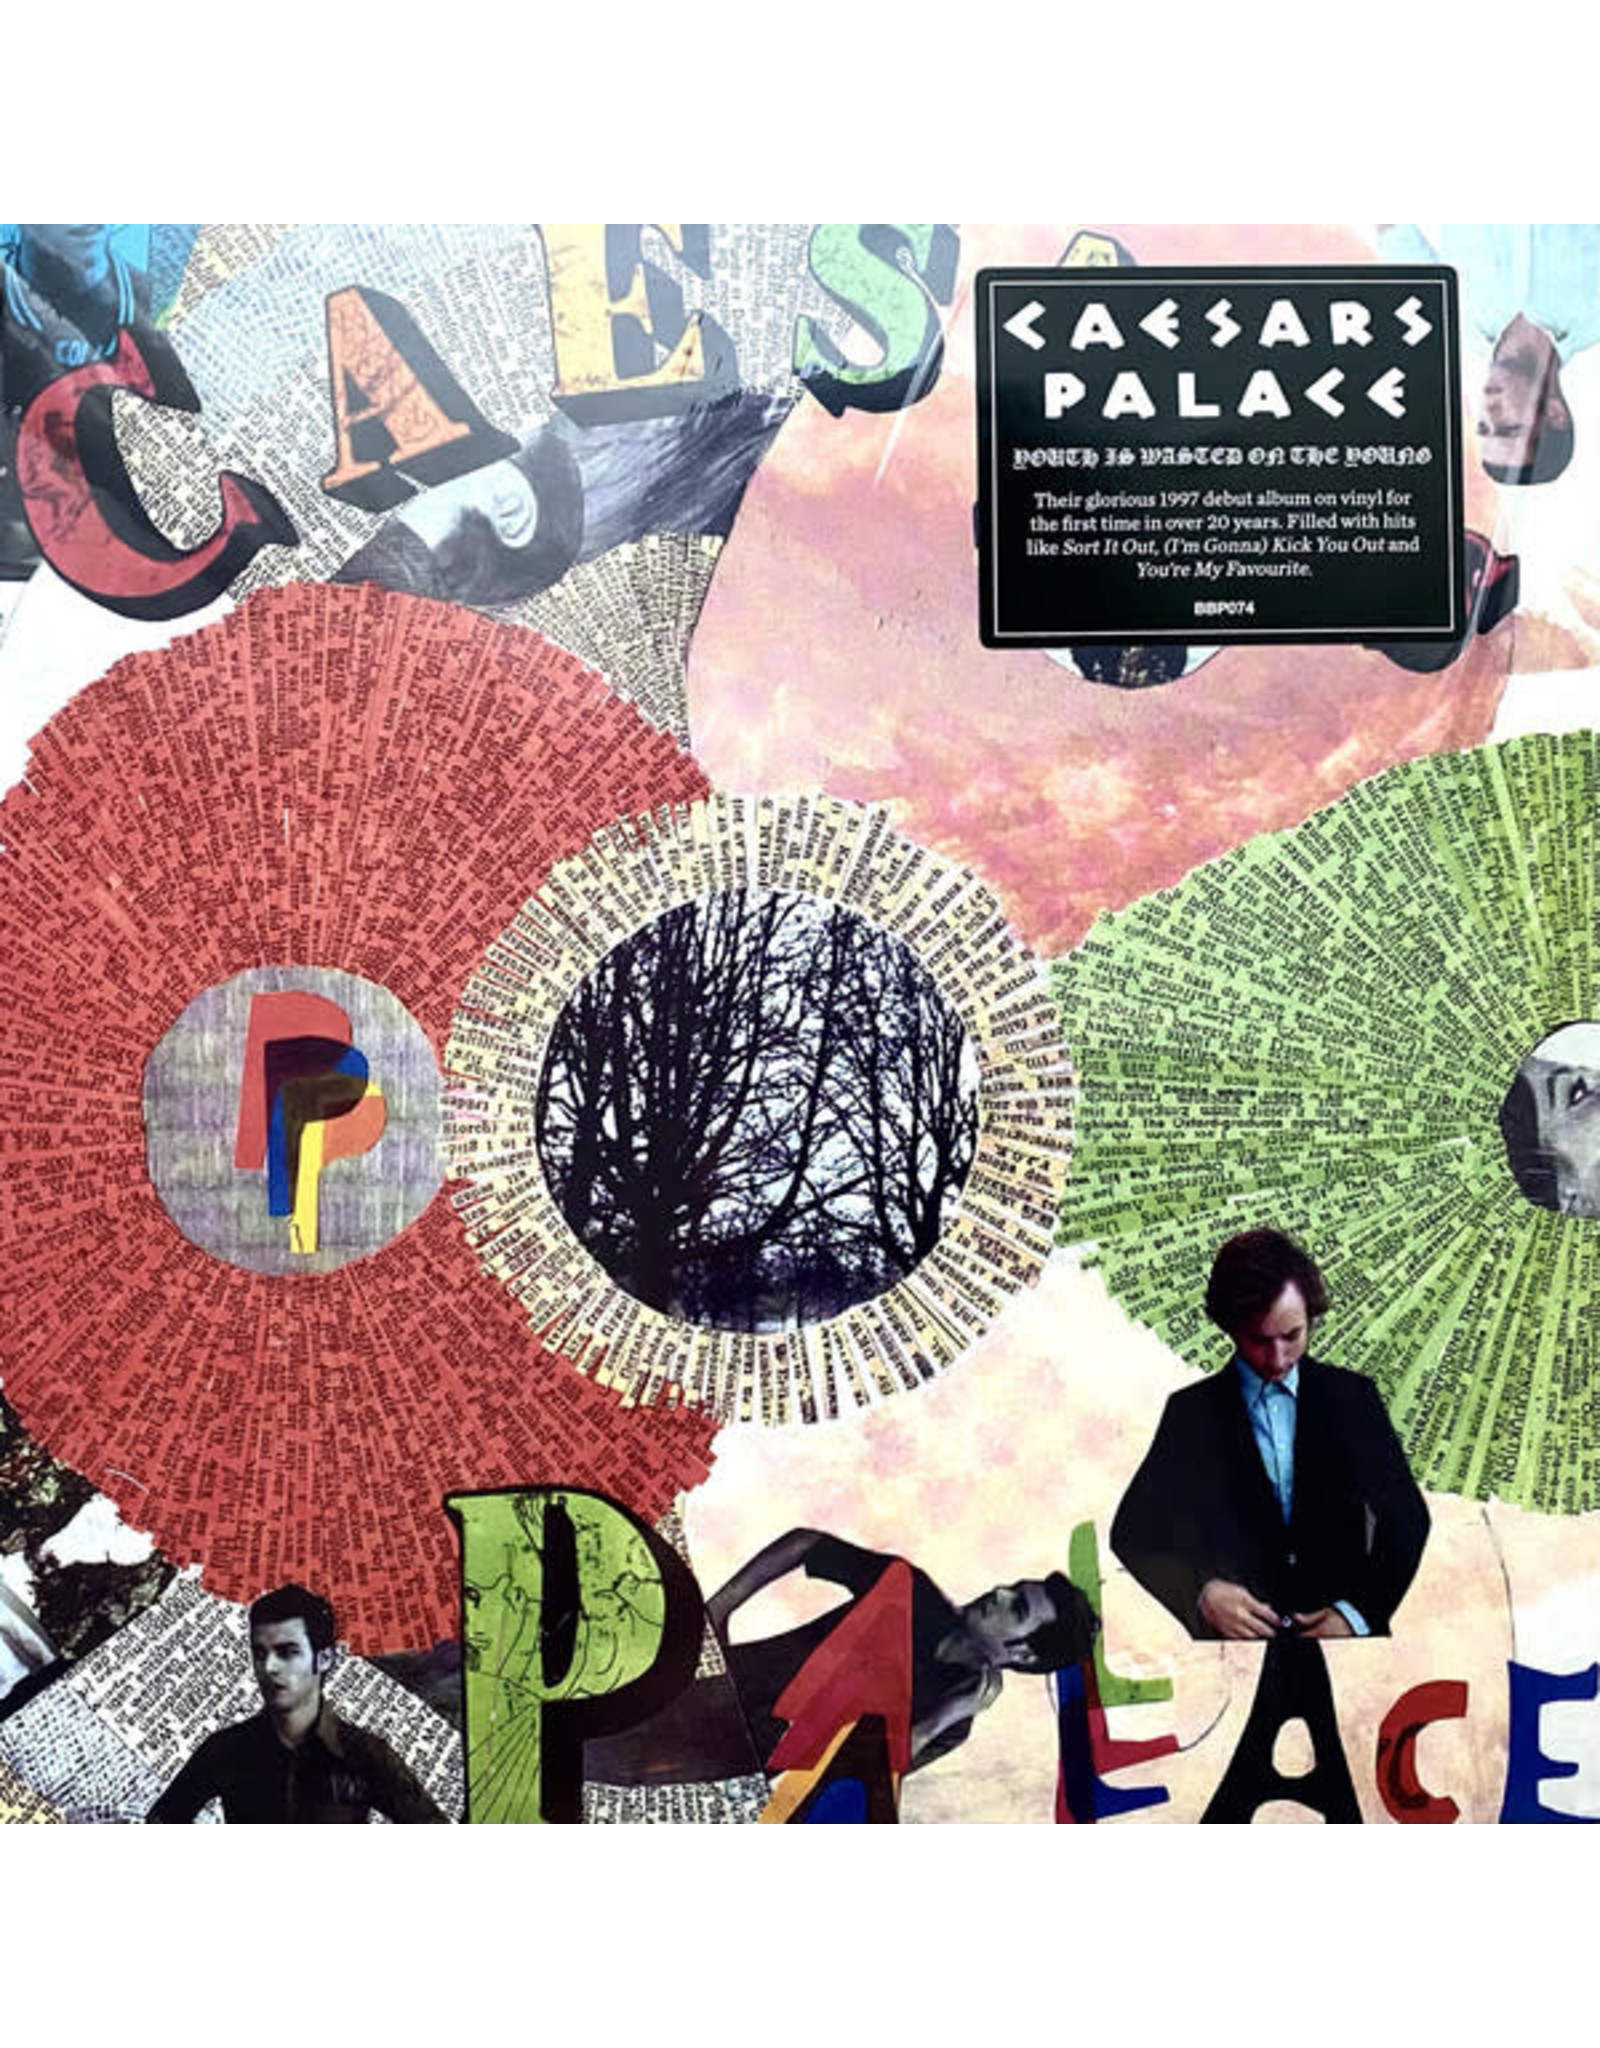 Caesars Palace - Youth is Wasted on the Young LP